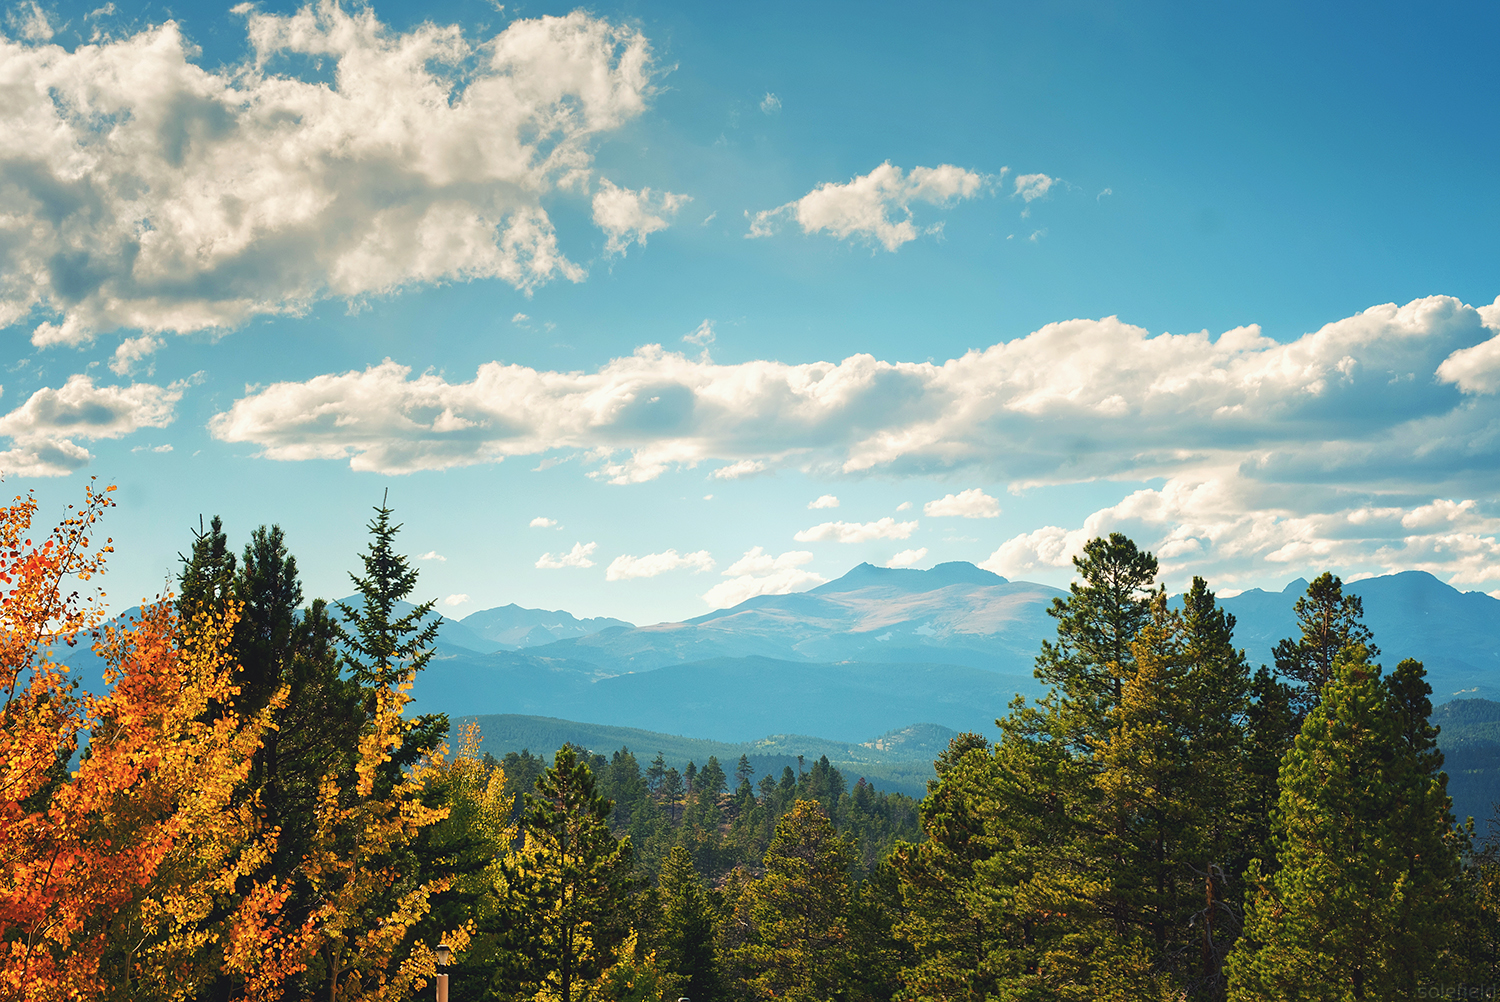 Fall Scene in Colorado overlooking mountains